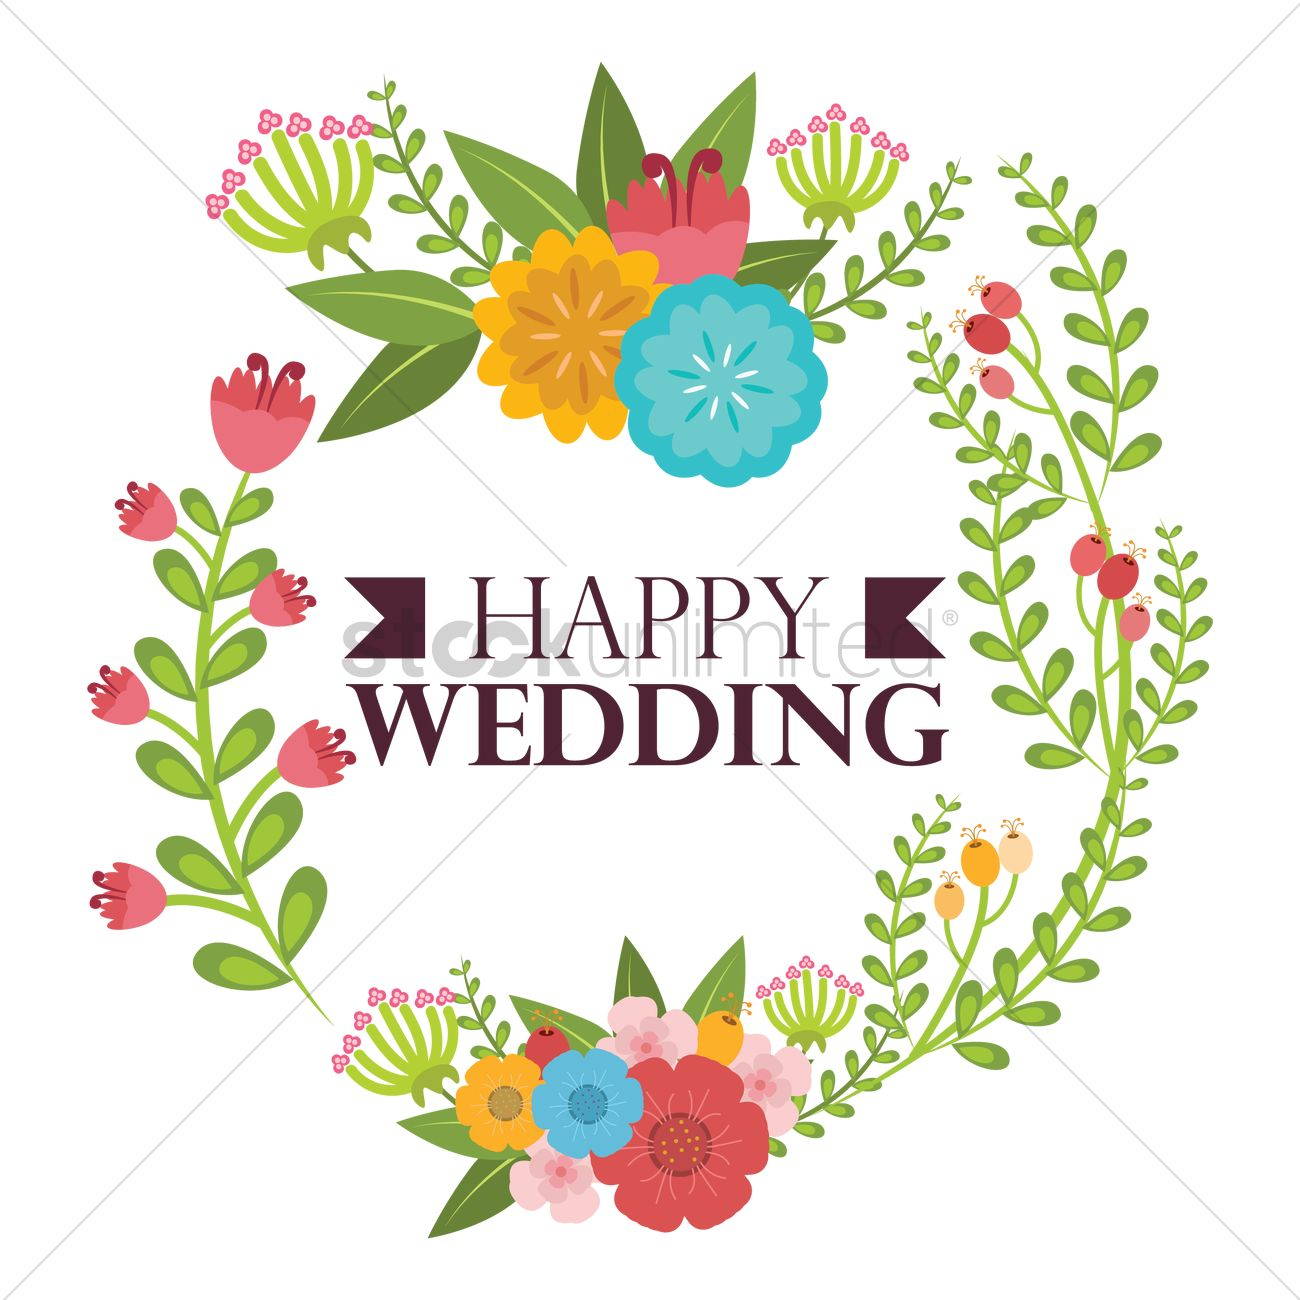 Happy Wedding Vector Image 1797282 Stockunlimited